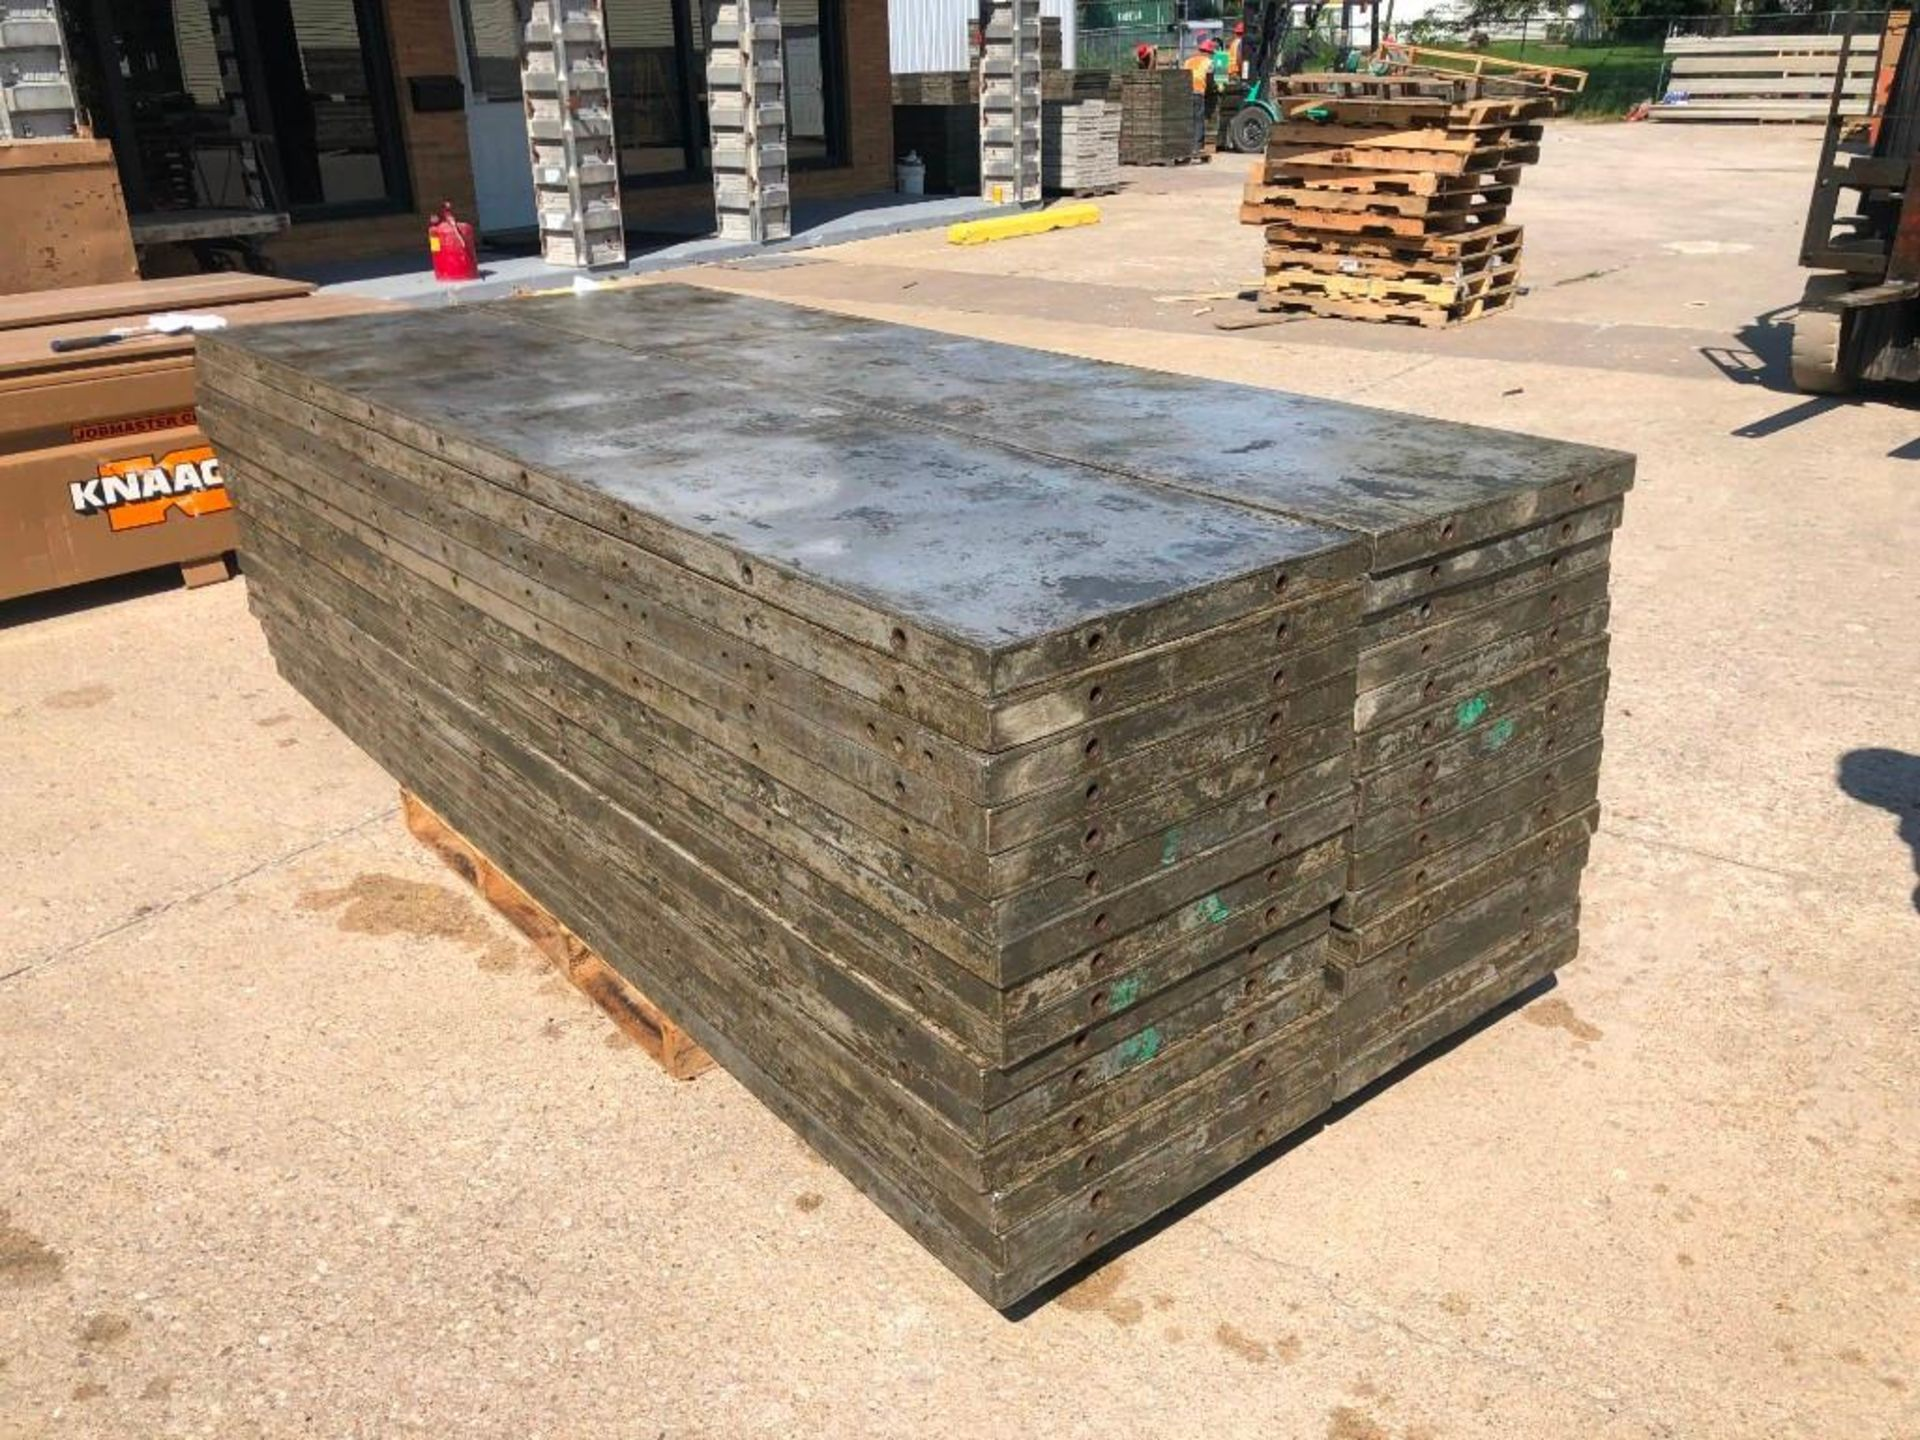 Lot 141 - (30) 2' x 9' Wall-Ties Aluminum Concrete Forms, Laydowns, Smooth 6-12 Hole Pattern. Located at 301 E